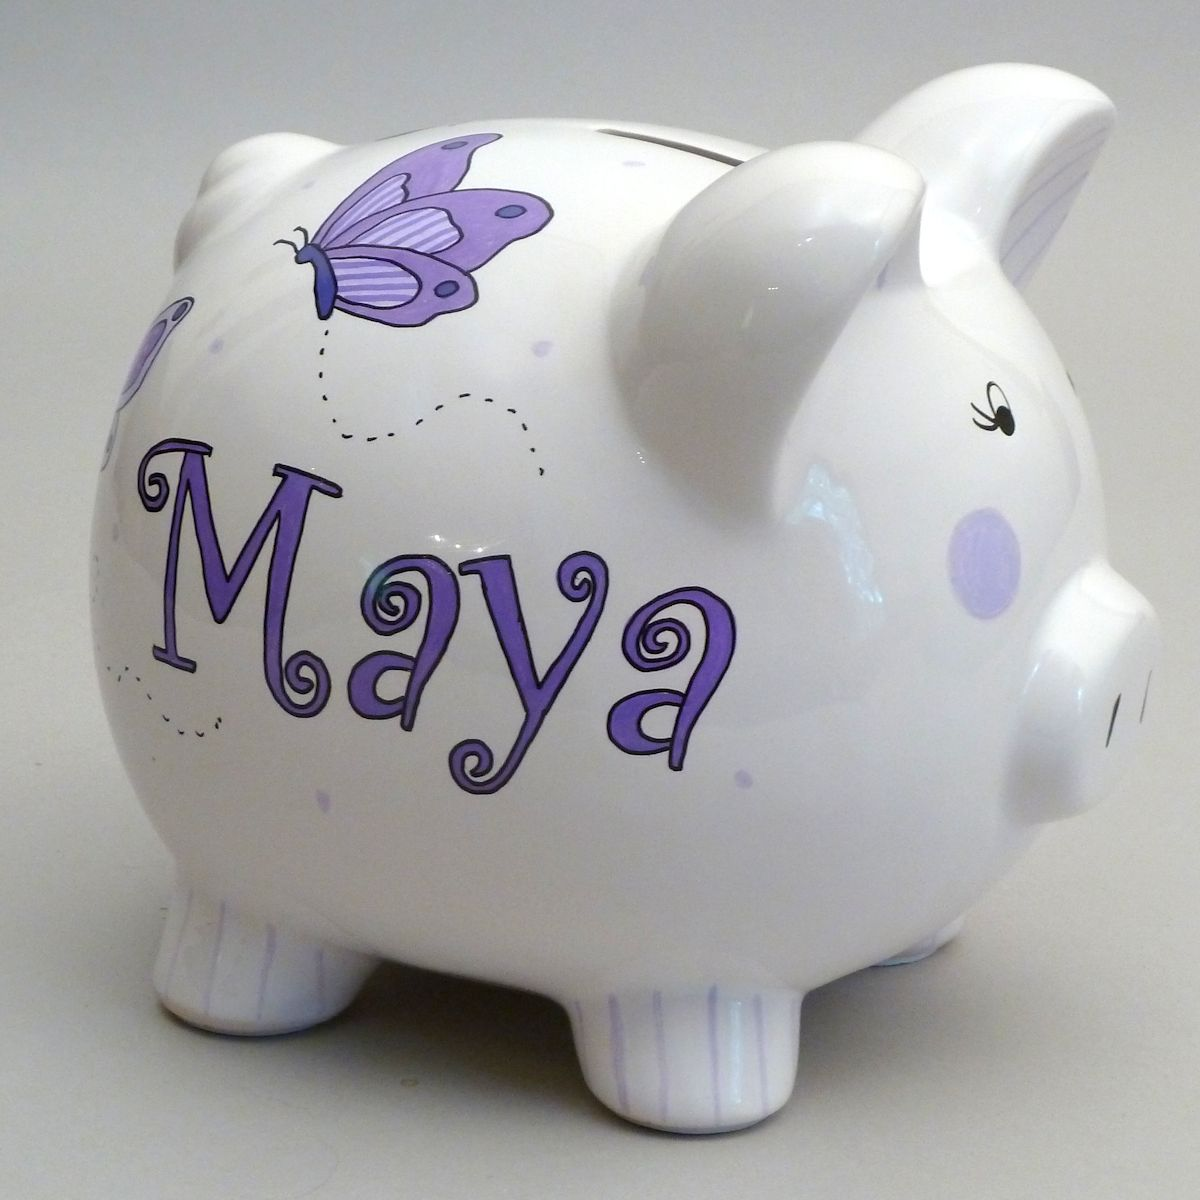 Piggy Bank Idea Large Lavender Butterfly Piggy Bank Is A Popular Design